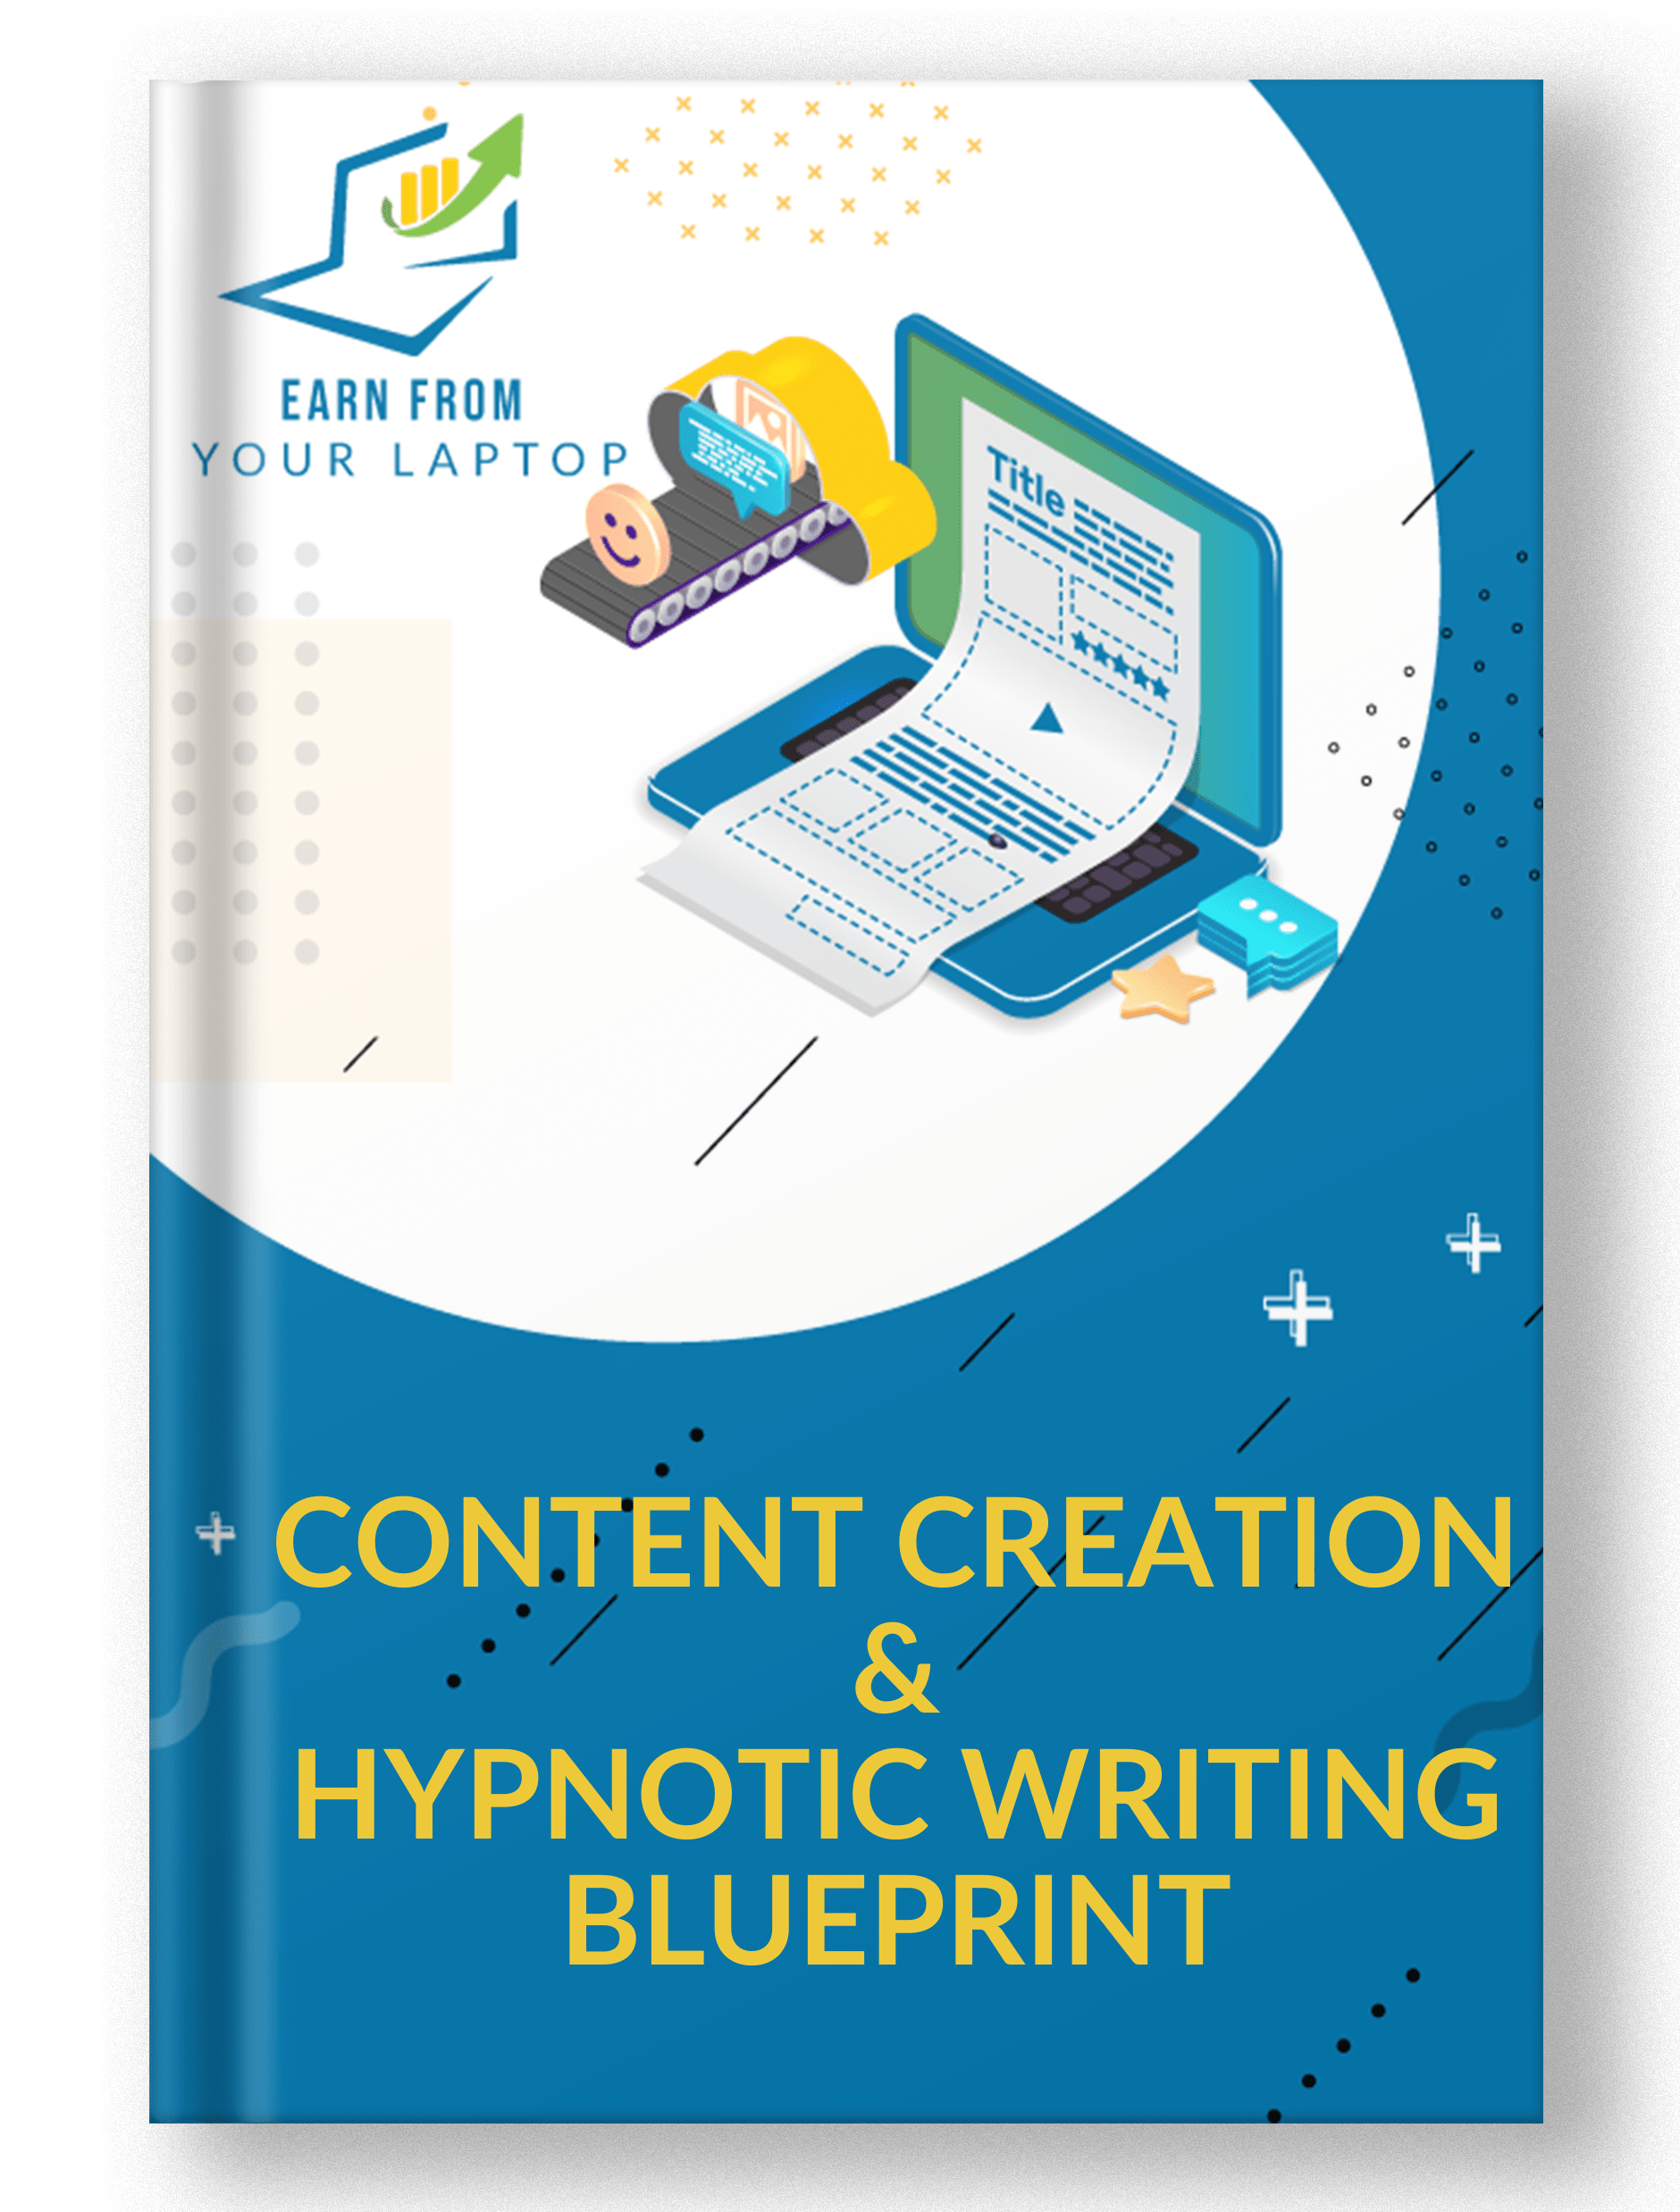 turn your passion into profit CONTENT CREATION HYPNOTIC WRITING BLUEPRINT min